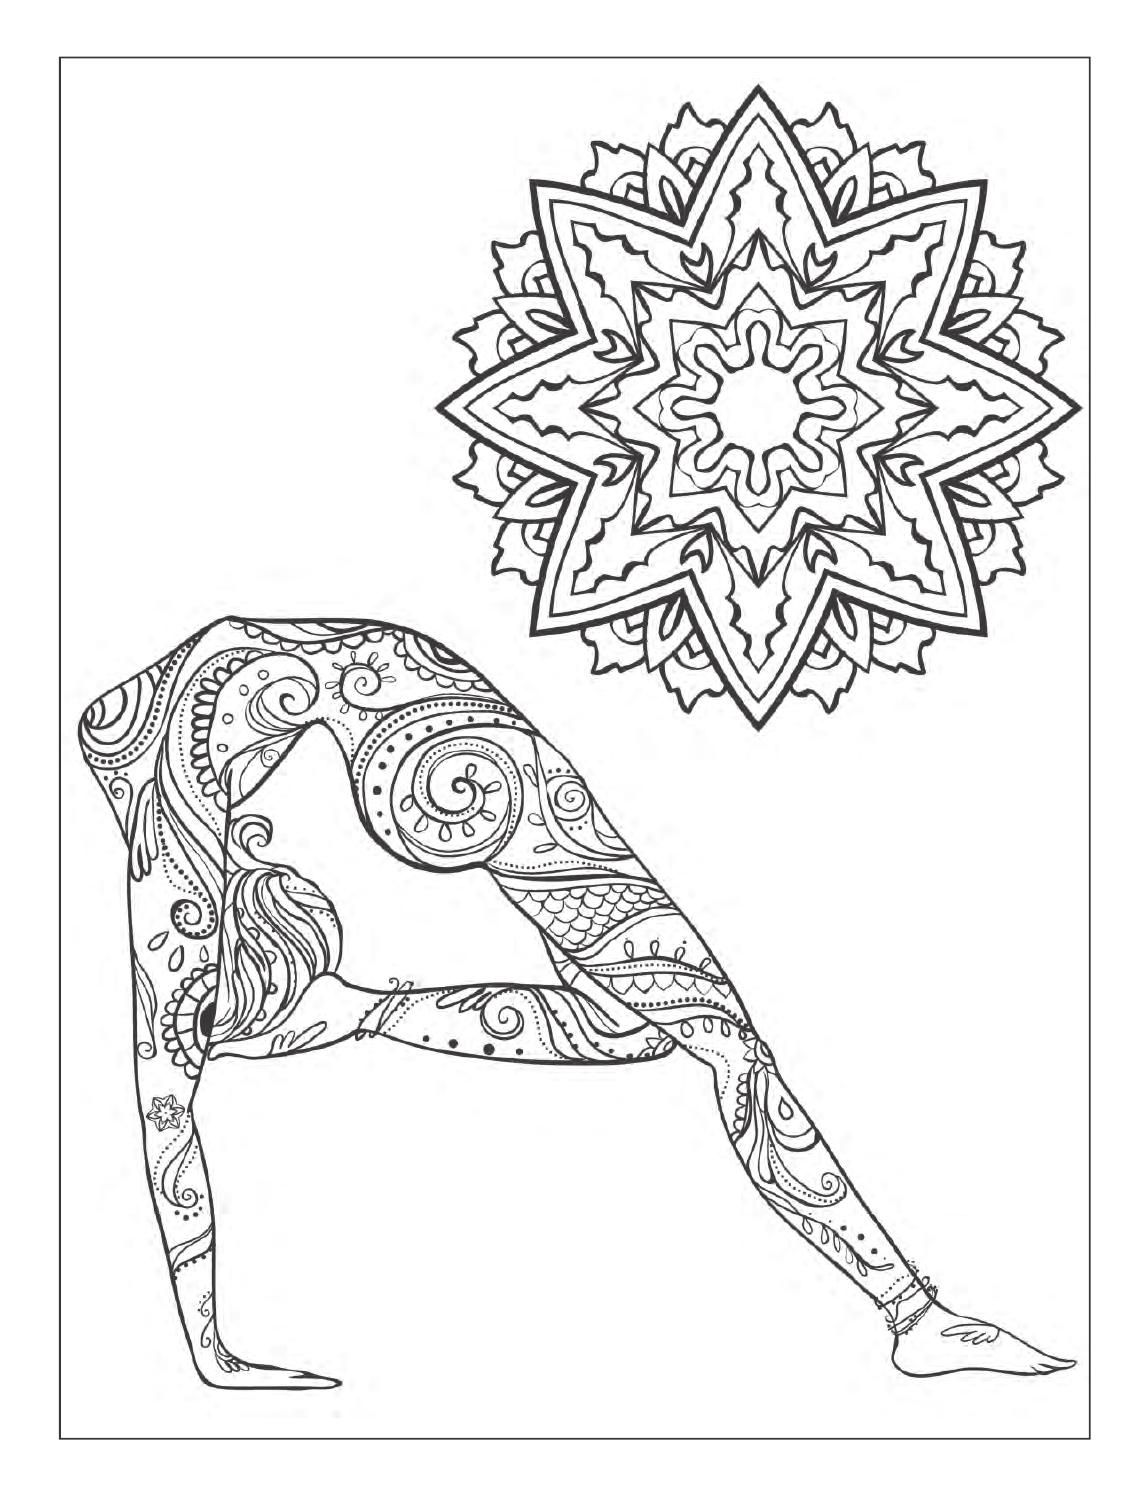 alexandru coloring pages - photo#15